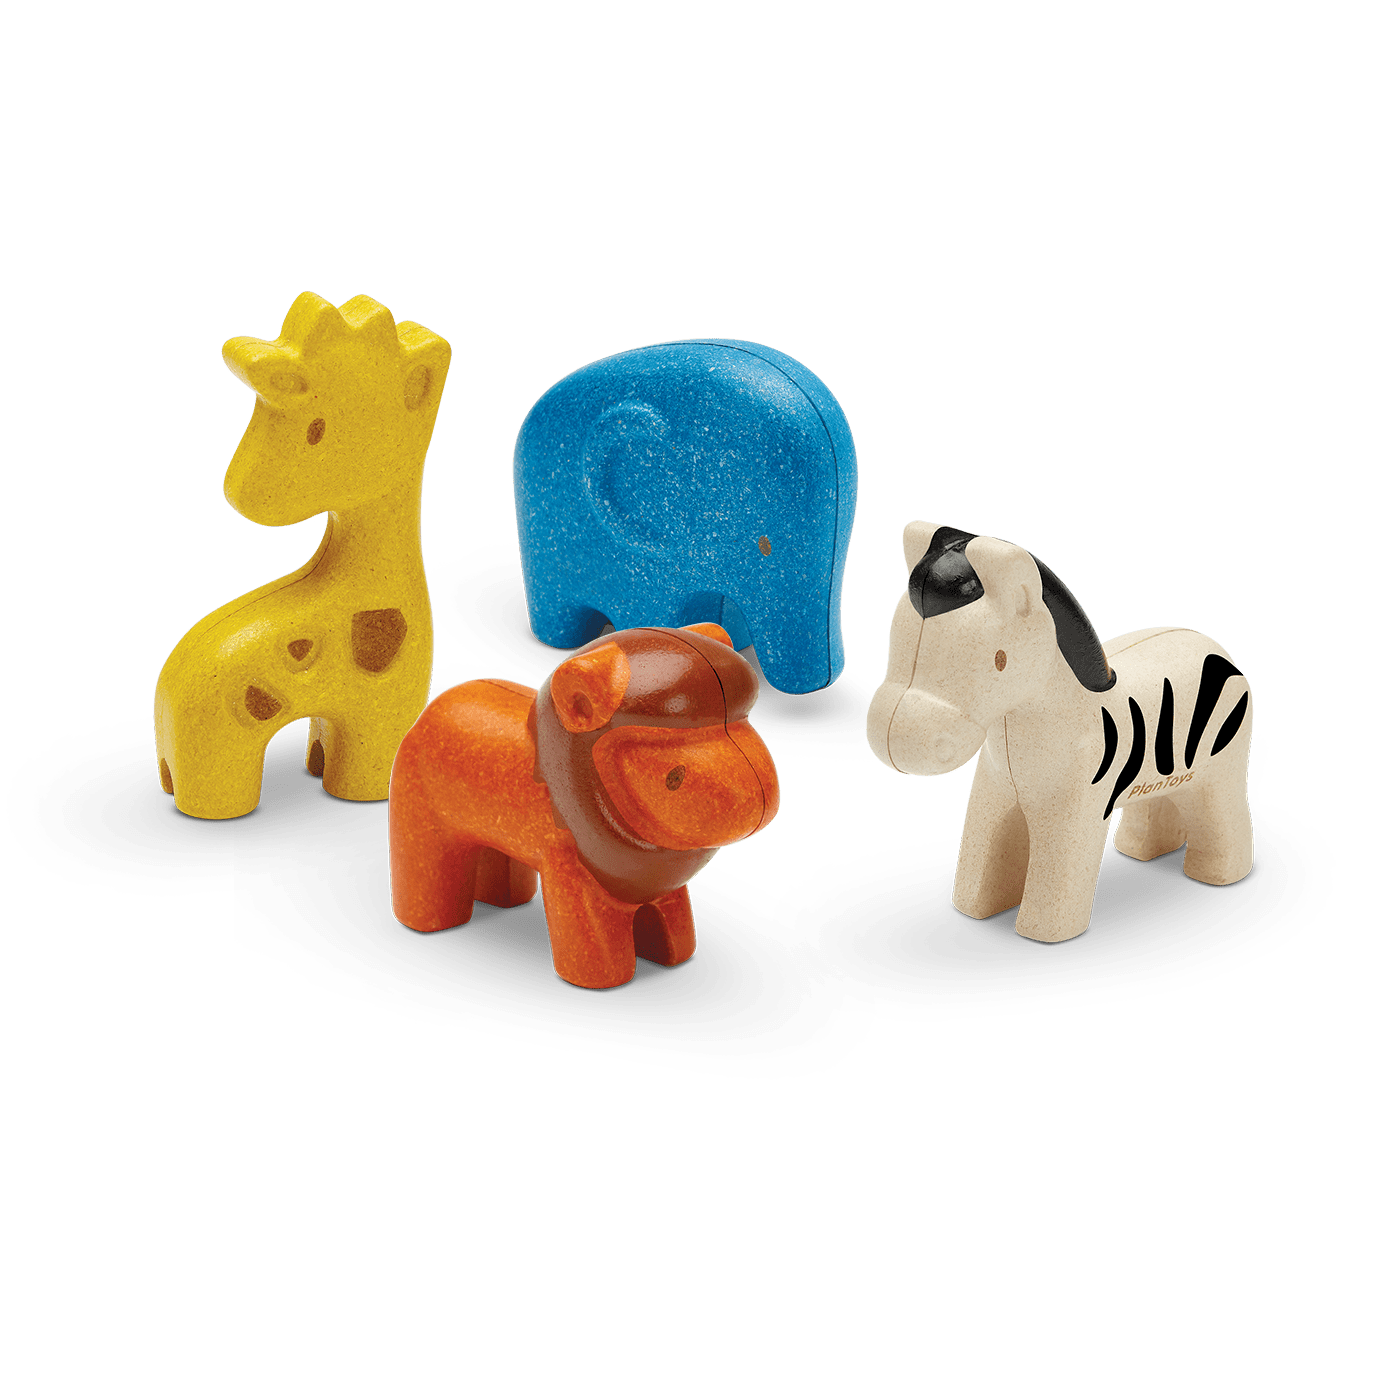 6128_PlanToys_WILD_ANIMALS_SET_Pretend_Play_Imagination_Coordination_Creative_Language_and_Communications_Social_Emotion_12m_Wooden_toys_Education_toys_Safety_Toys_Non-toxic_0.png